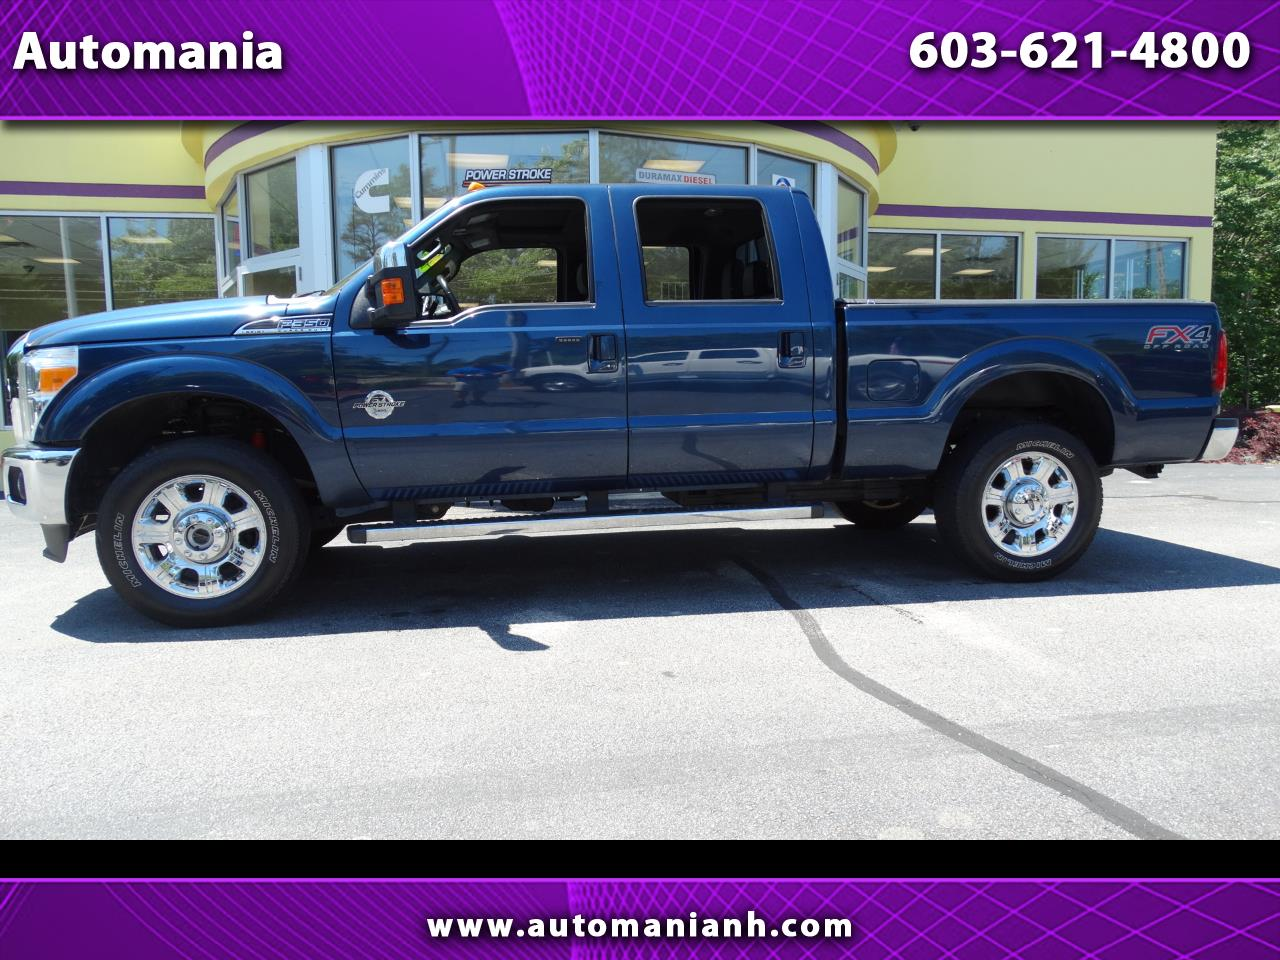 2016 Ford F-350 SD DIESEL CREW LARIAT SHORT BED 4X4 POWERSTROKE TRUCK